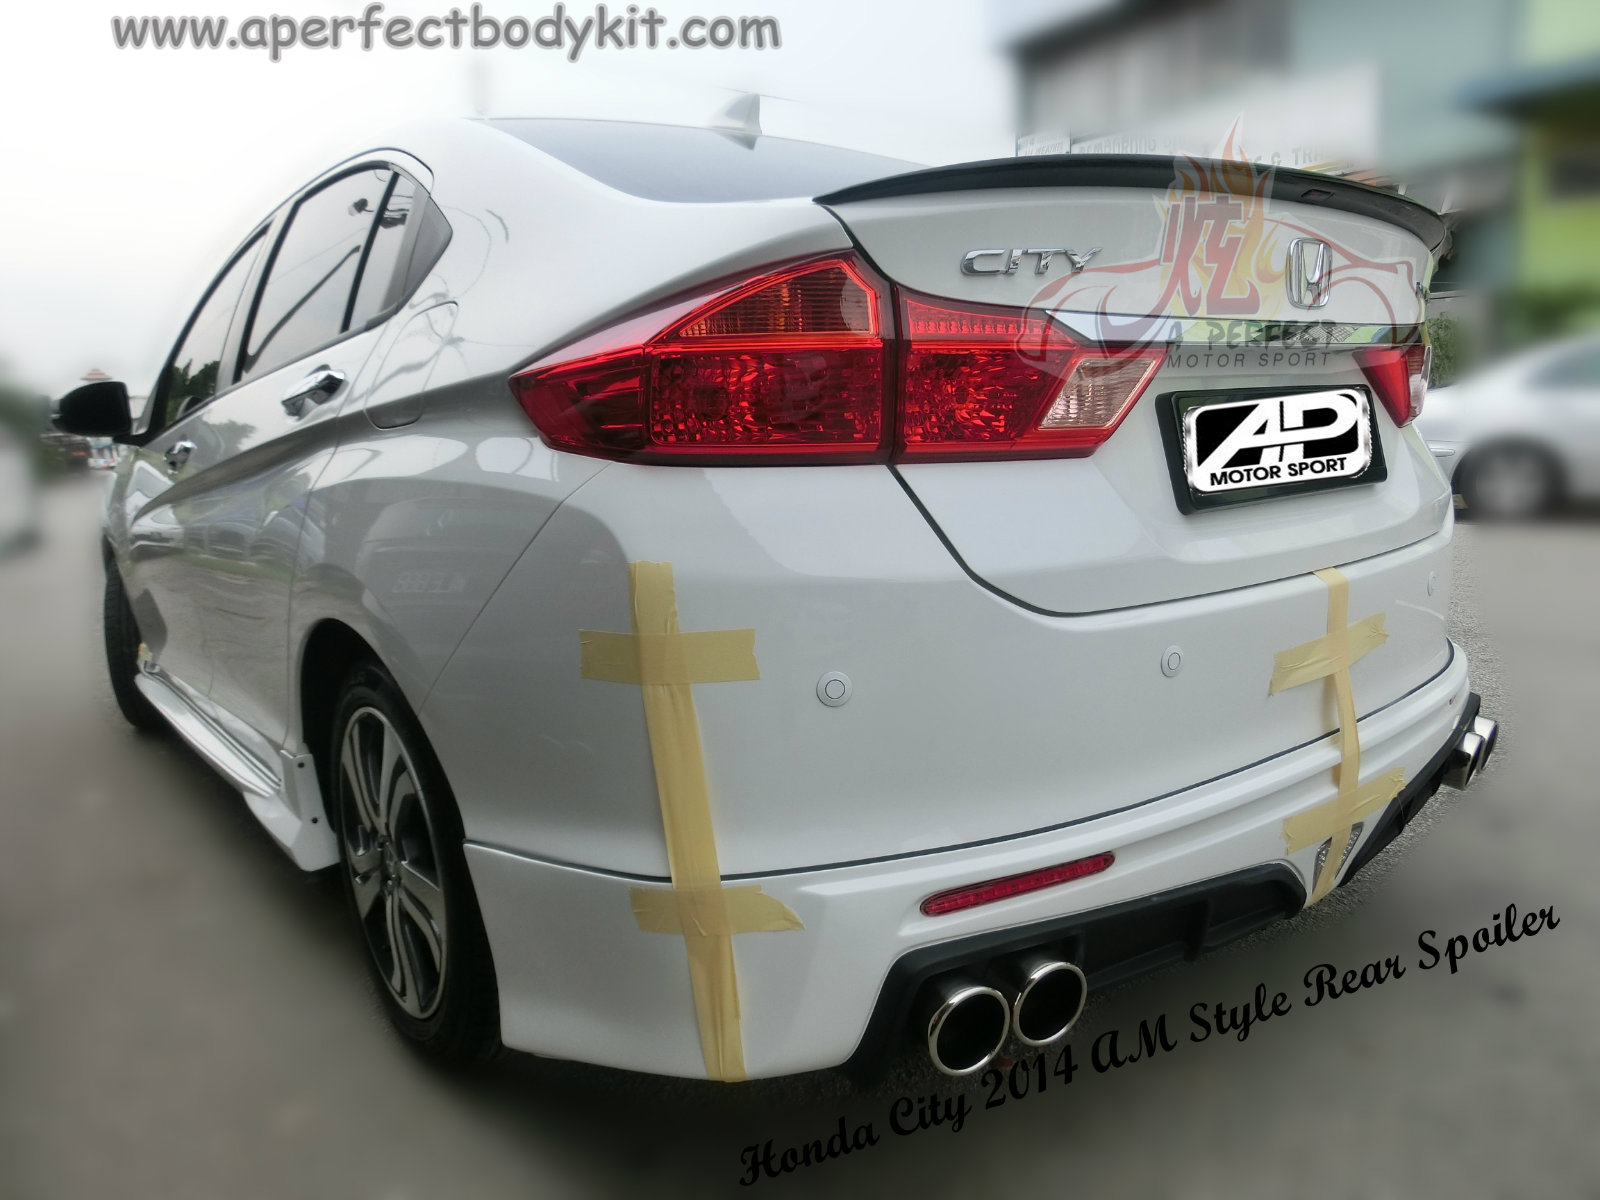 Honda City 2014 Am Style Rear Spoiler Honda City 2014